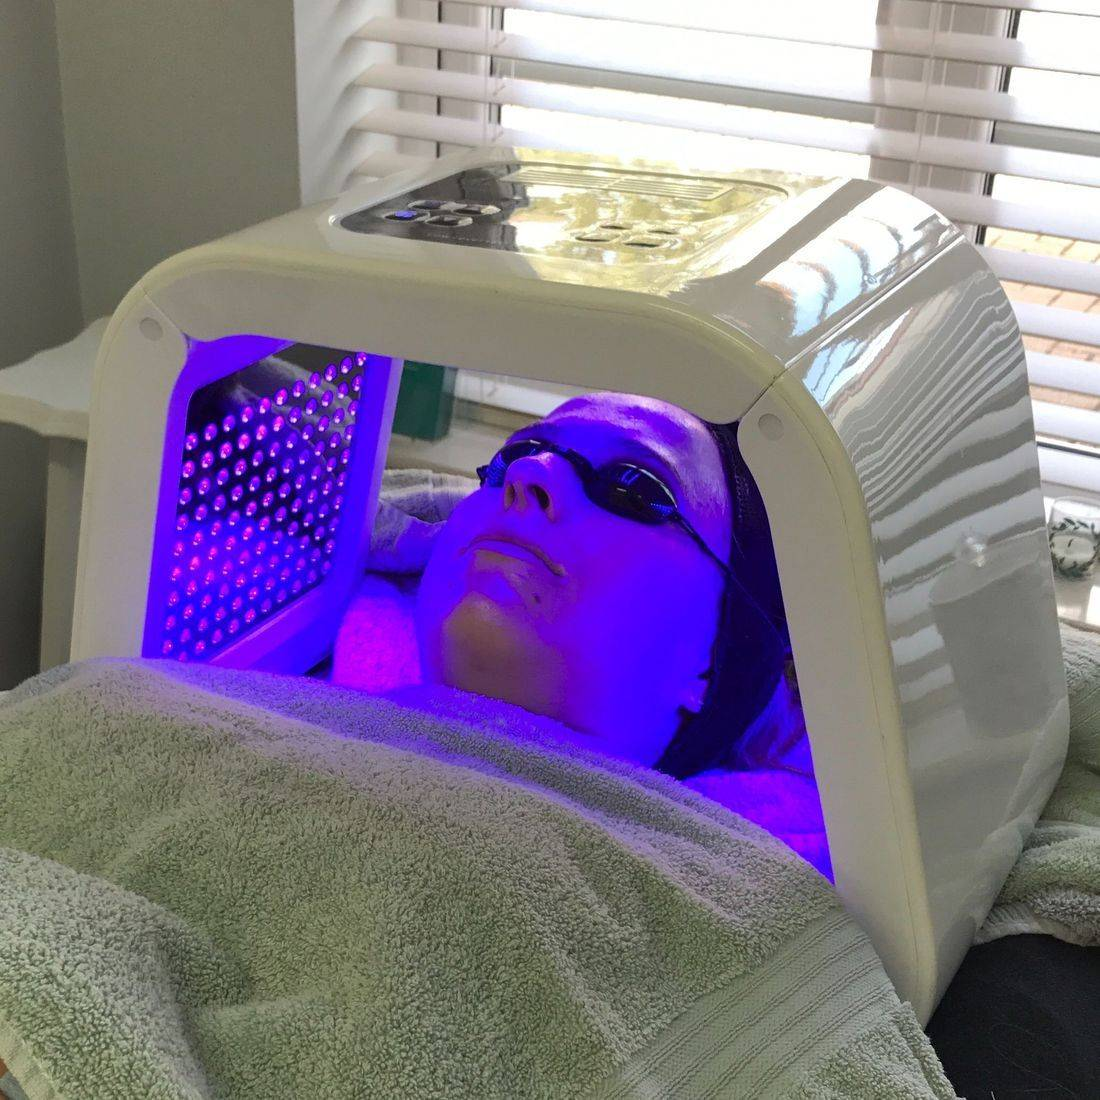 Blue LED Light Therapy, phototherapy, Creativity beauty solutions dermalogica facial